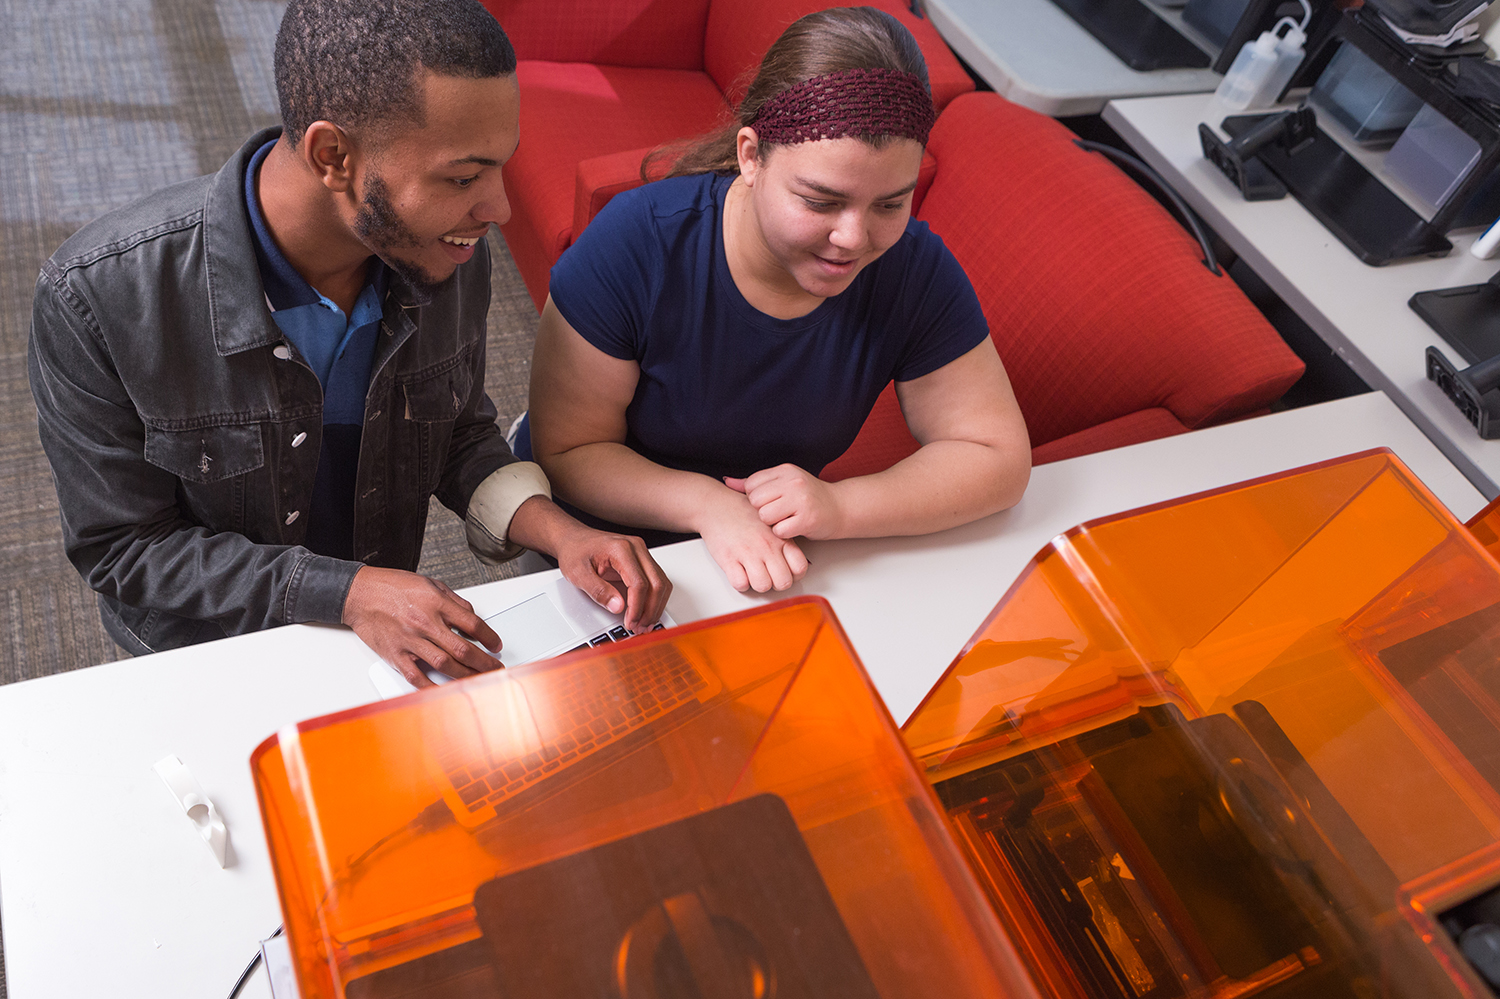 At the MIX Lab, students are empowered to develop their design and 3D printing skills through hands on experience with a range of tools, including the  Form 2 .